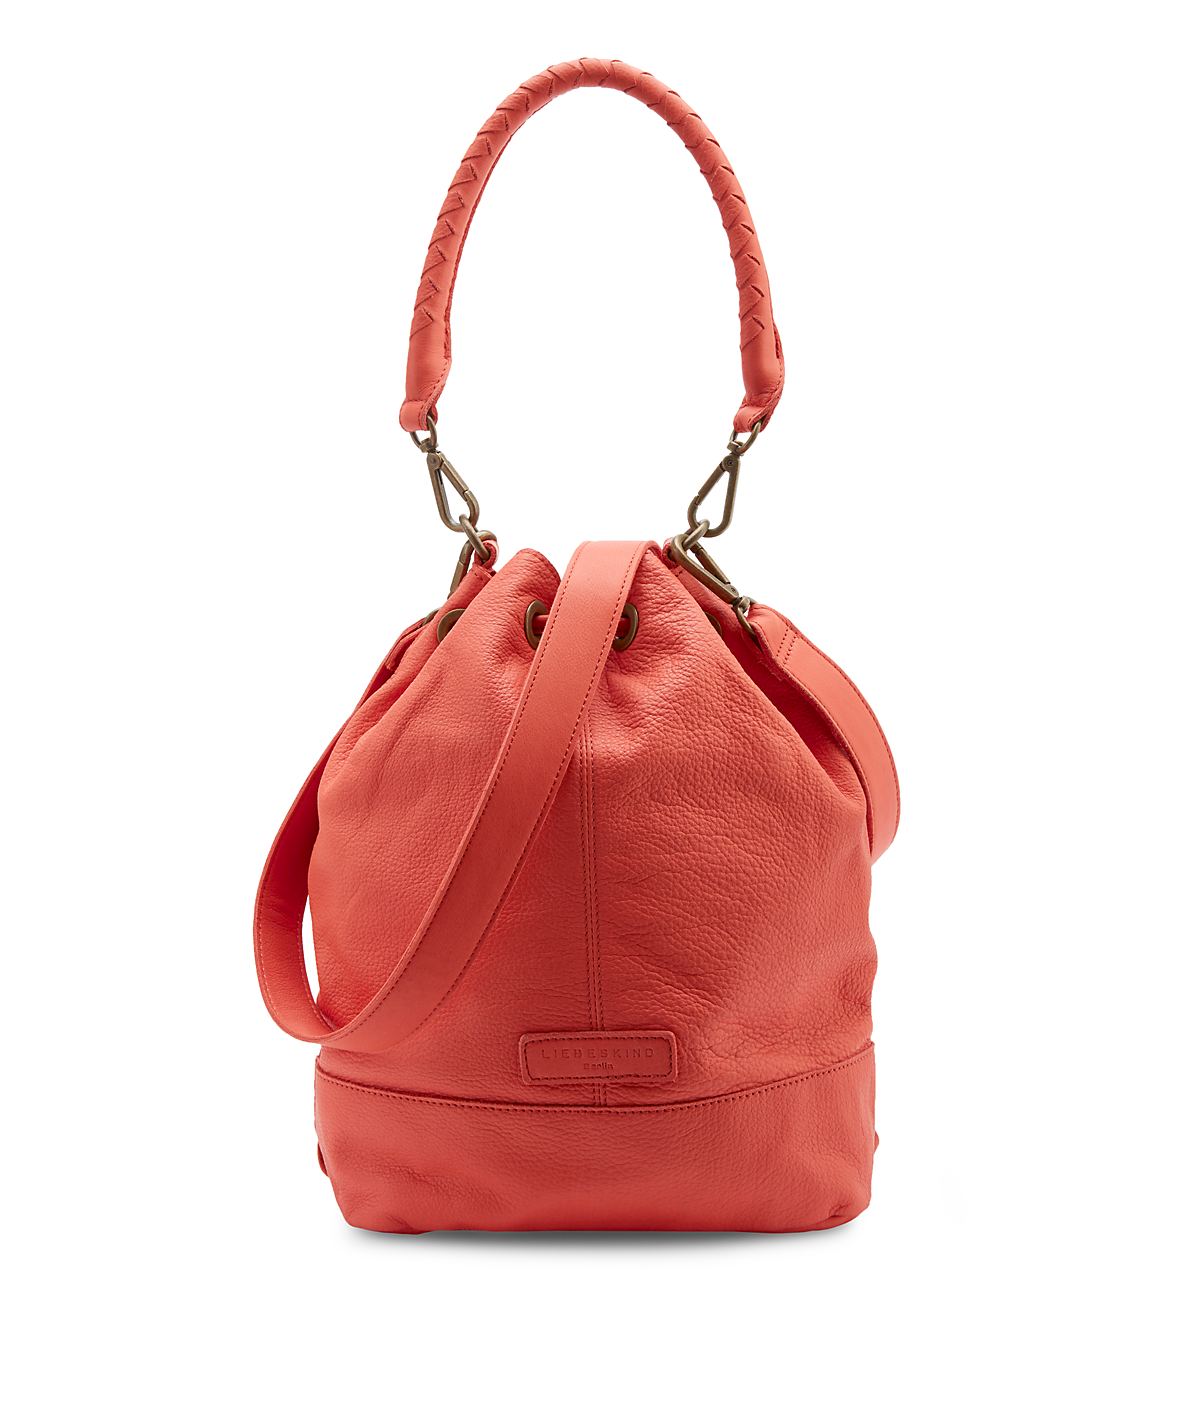 Debby shoulder bag from liebeskind